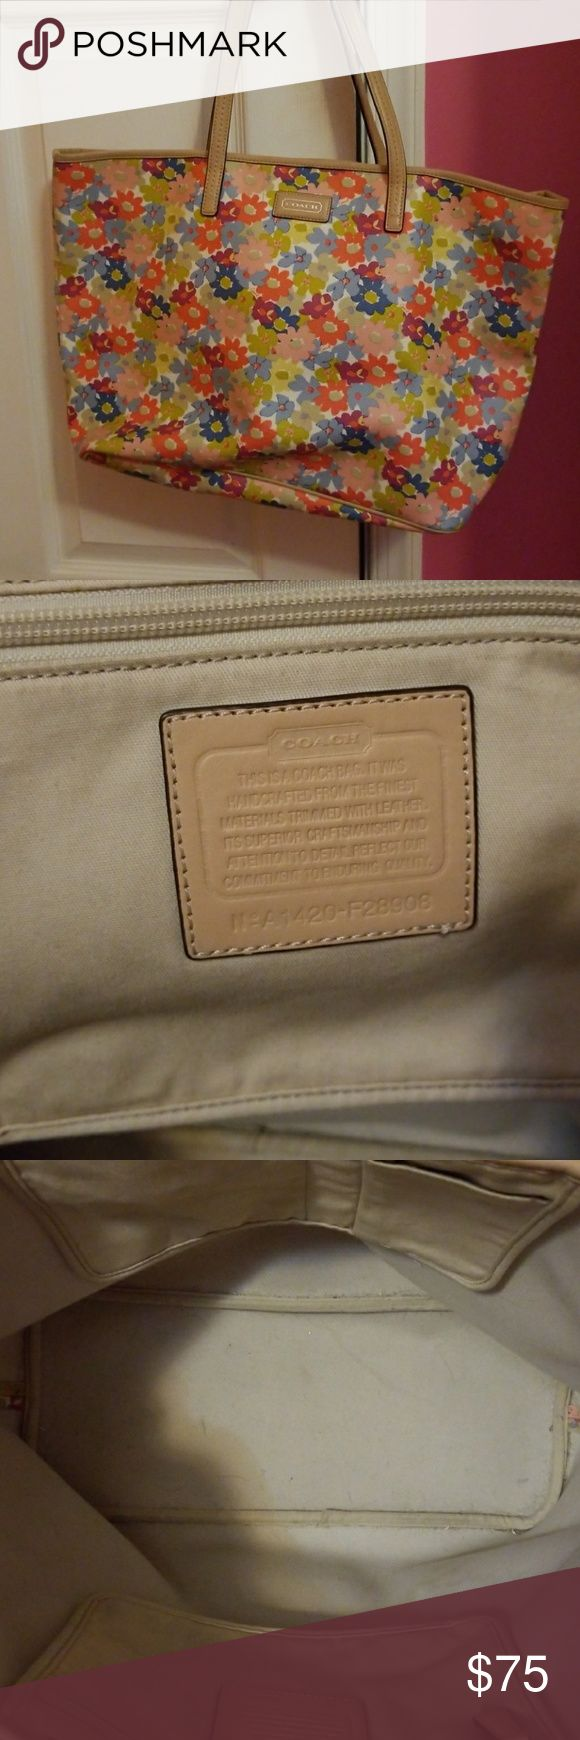 Coach Tote Bag Used Coach bag still looks brand new. Small stain on the bottom of the bag inside Coach Bags Shoulder Bags